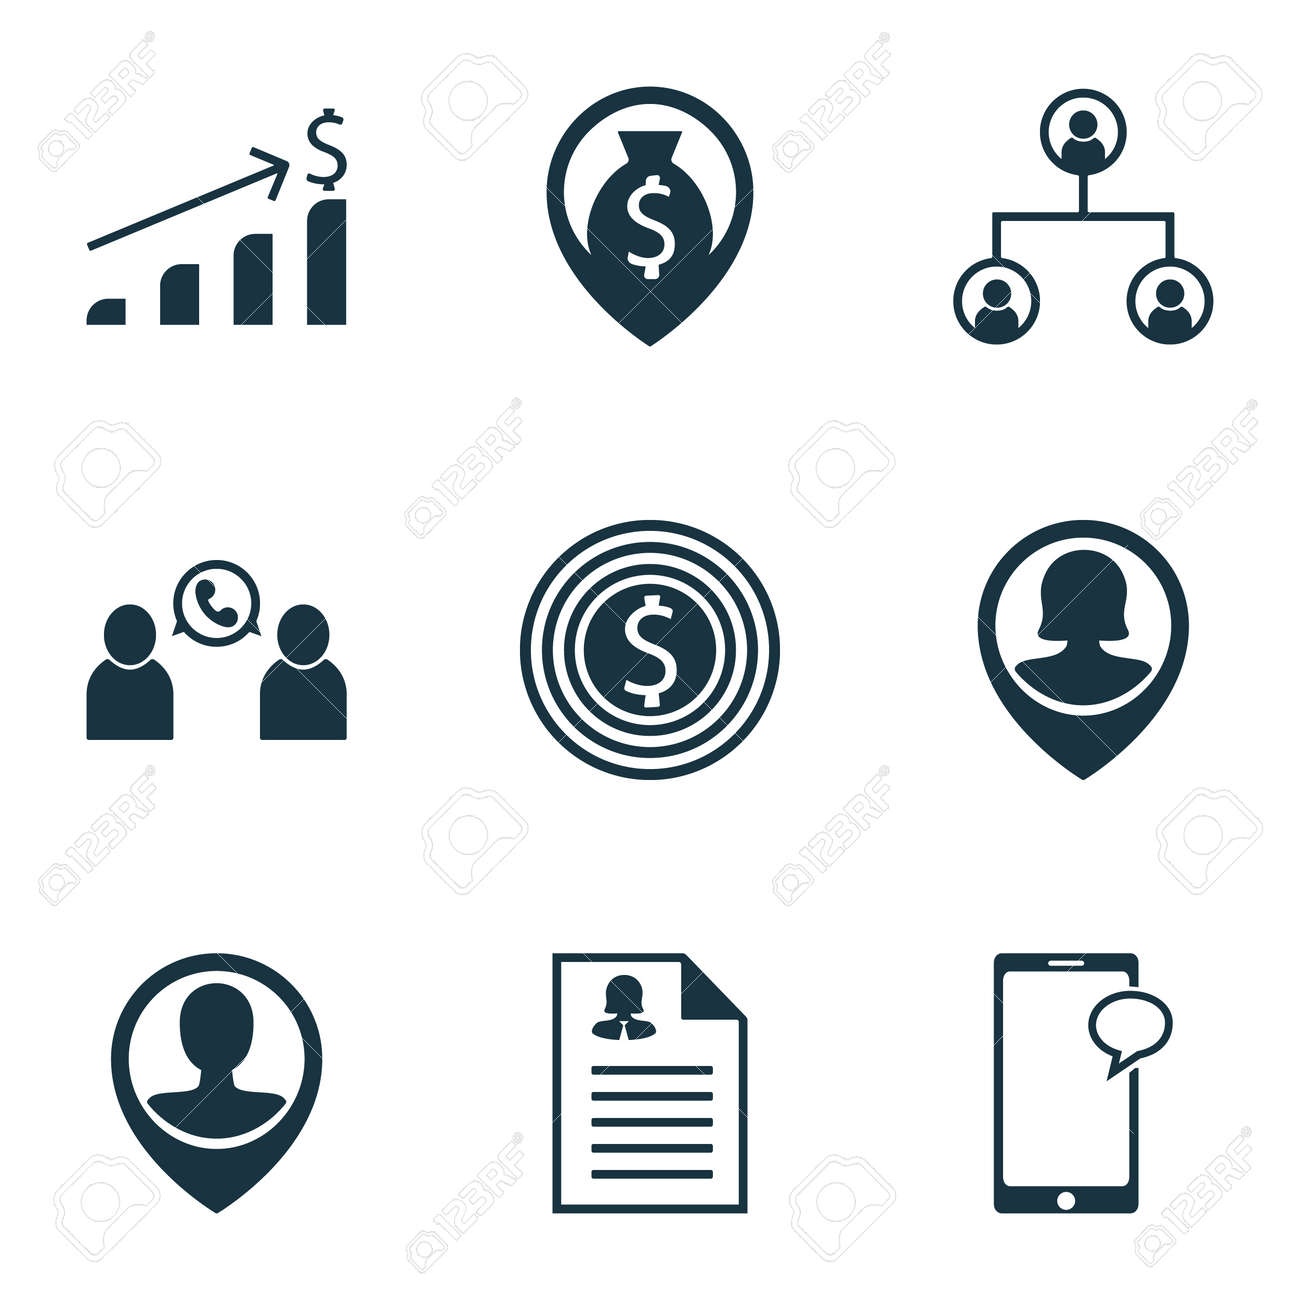 Set Of Human Resources Icons On Female Application, Tree Structure